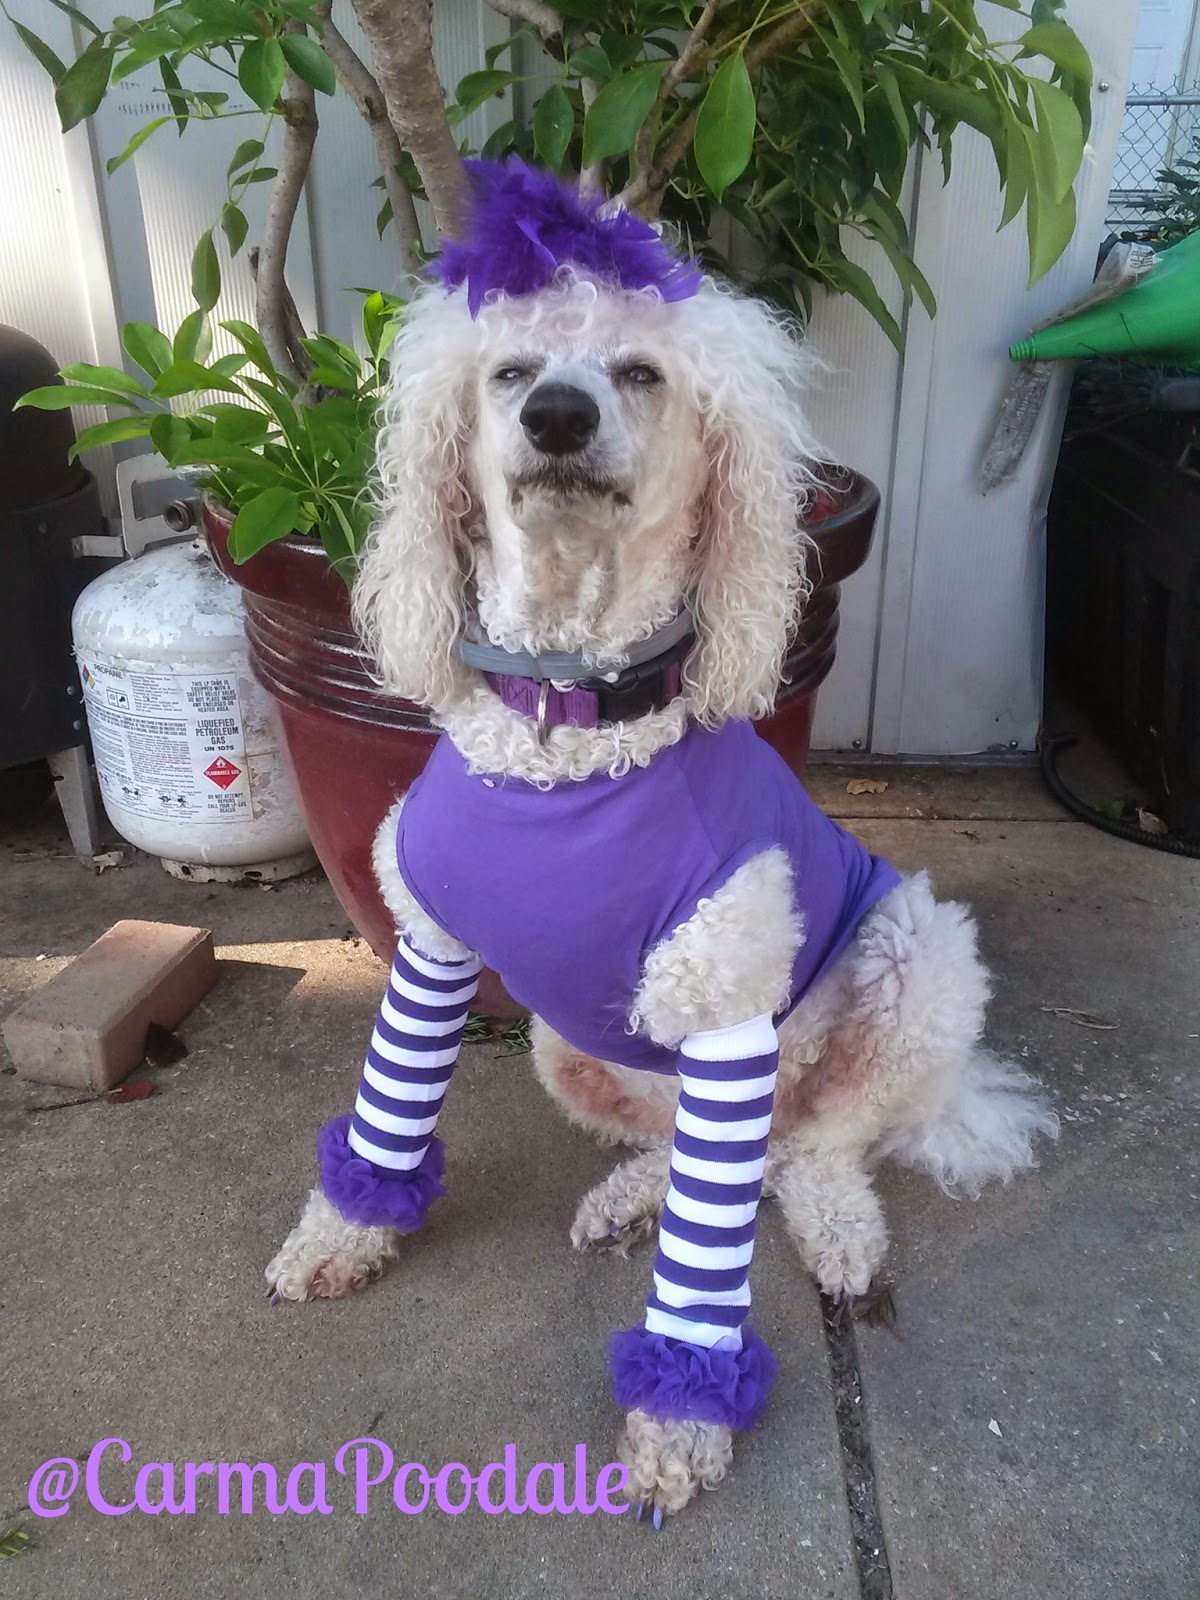 Poodle dressed in purple